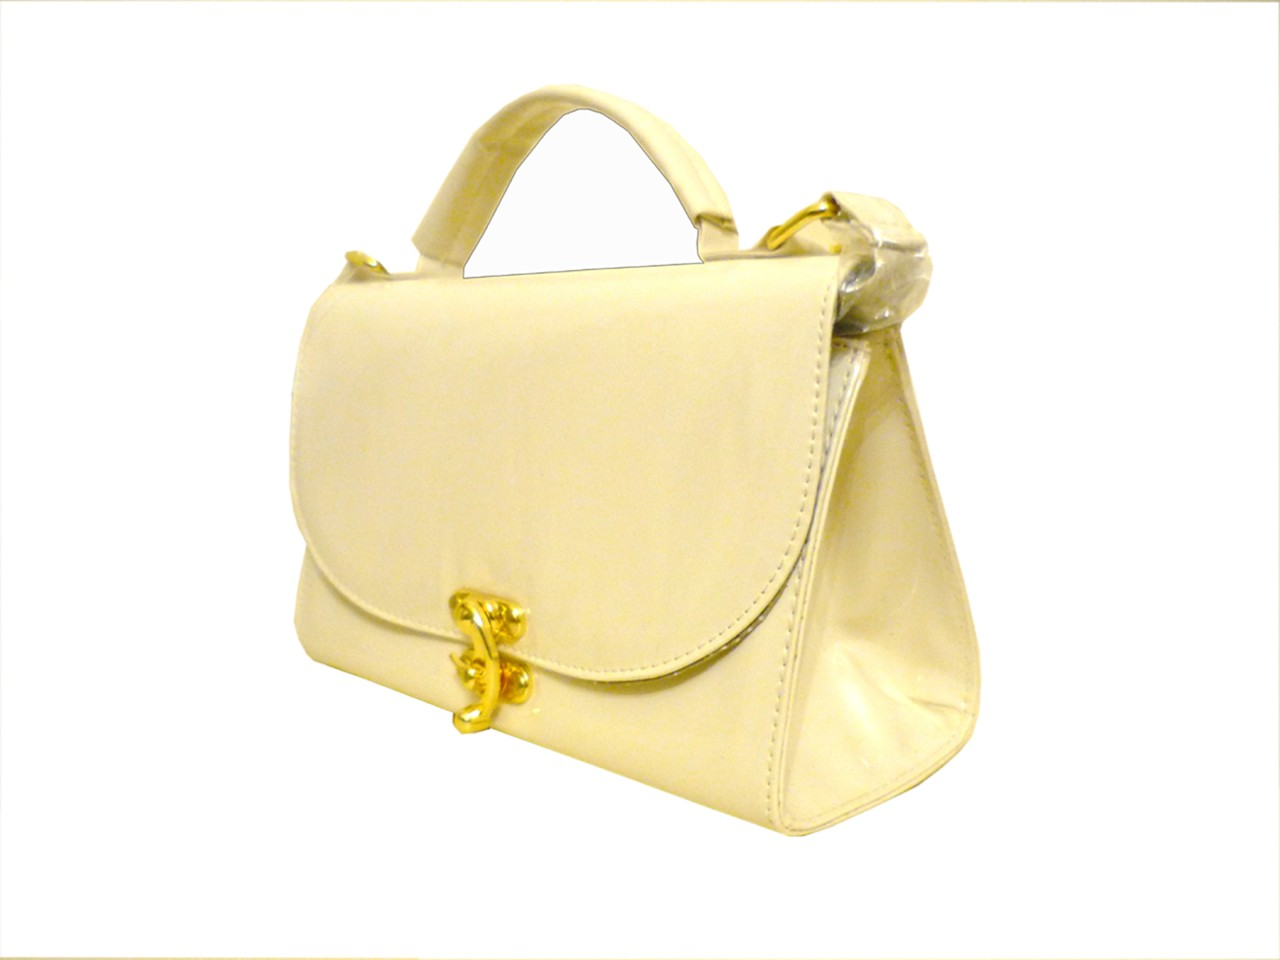 a5602f686718 Shoulder Handbags Primark   Stanford Center for Opportunity Policy ...